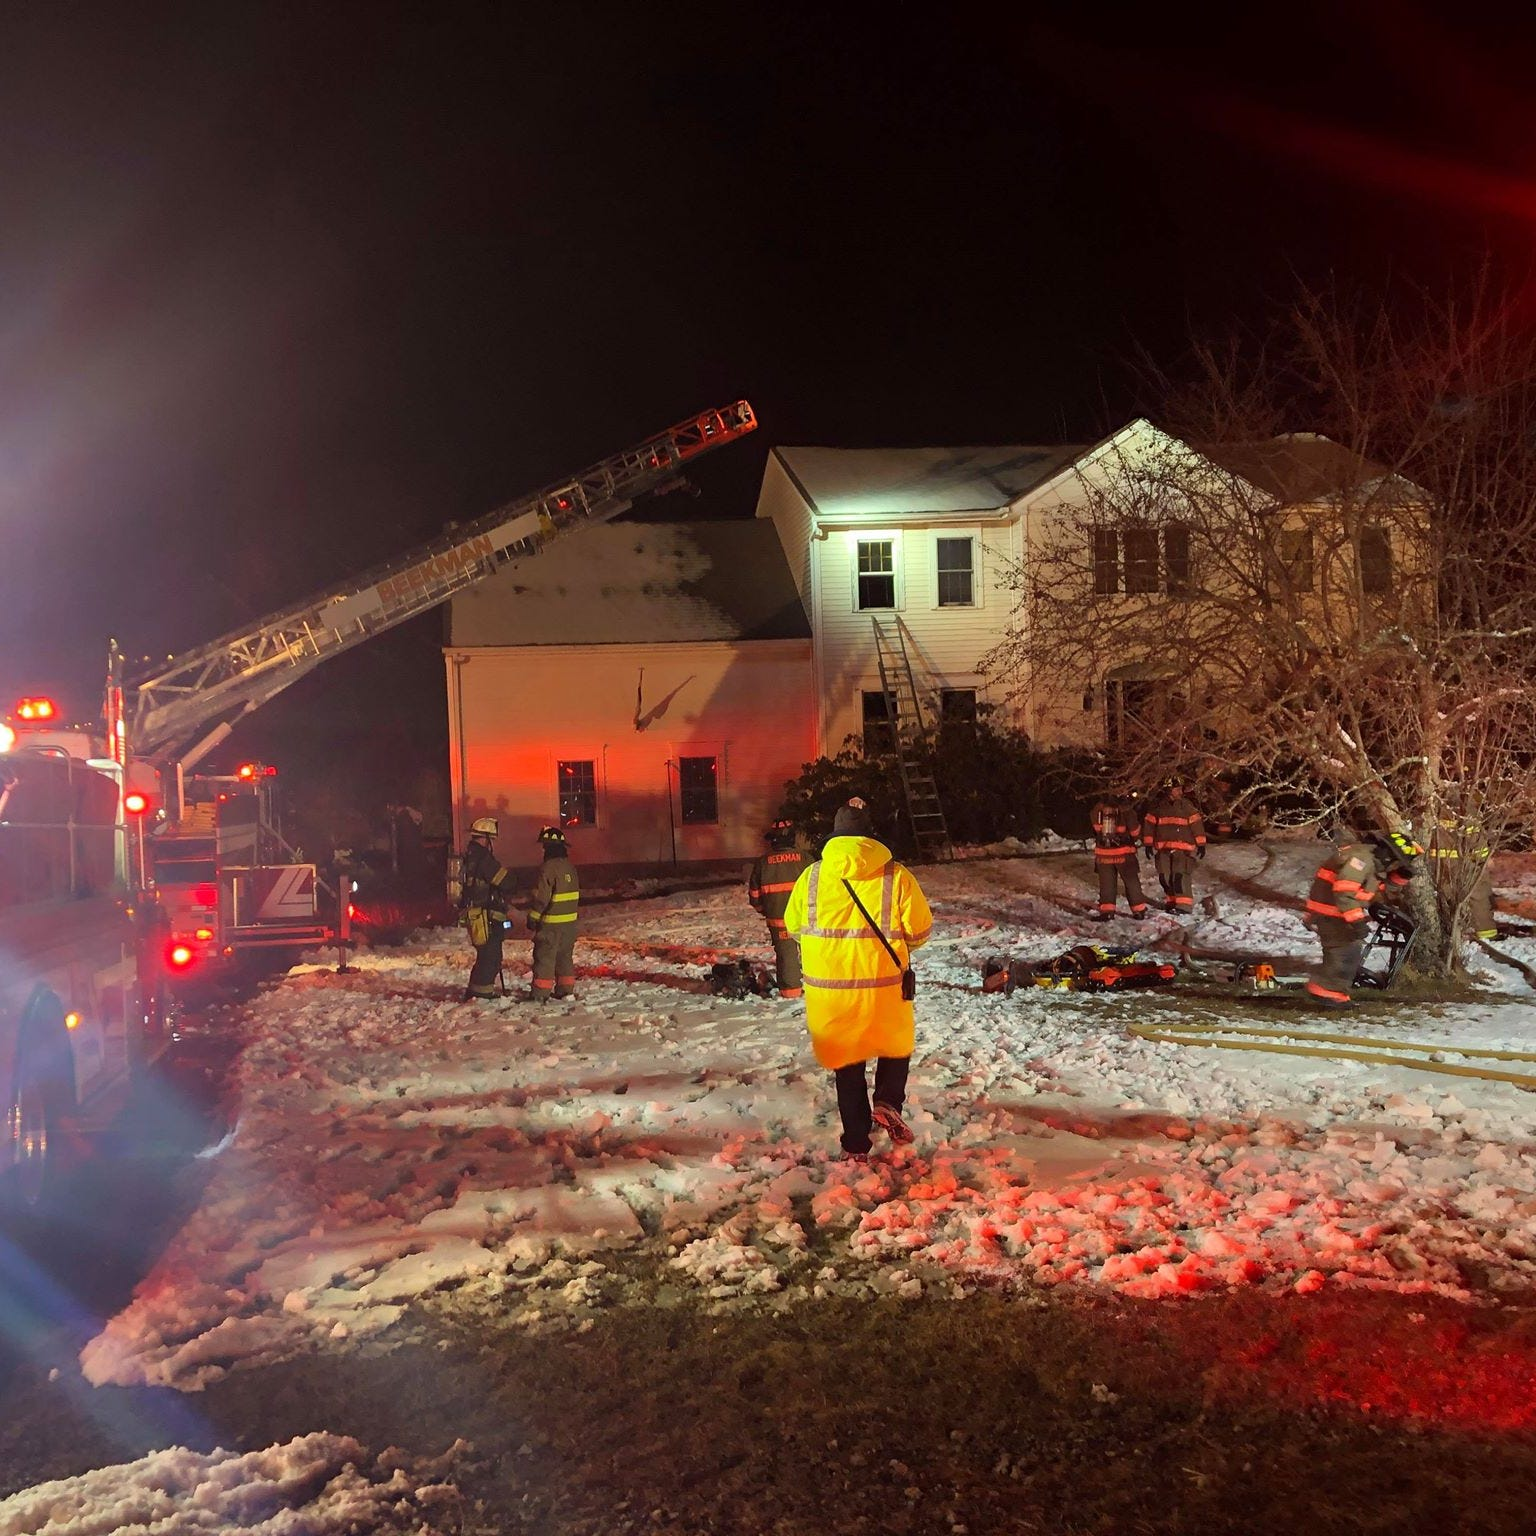 Family pets killed in Beekman house fire: chief